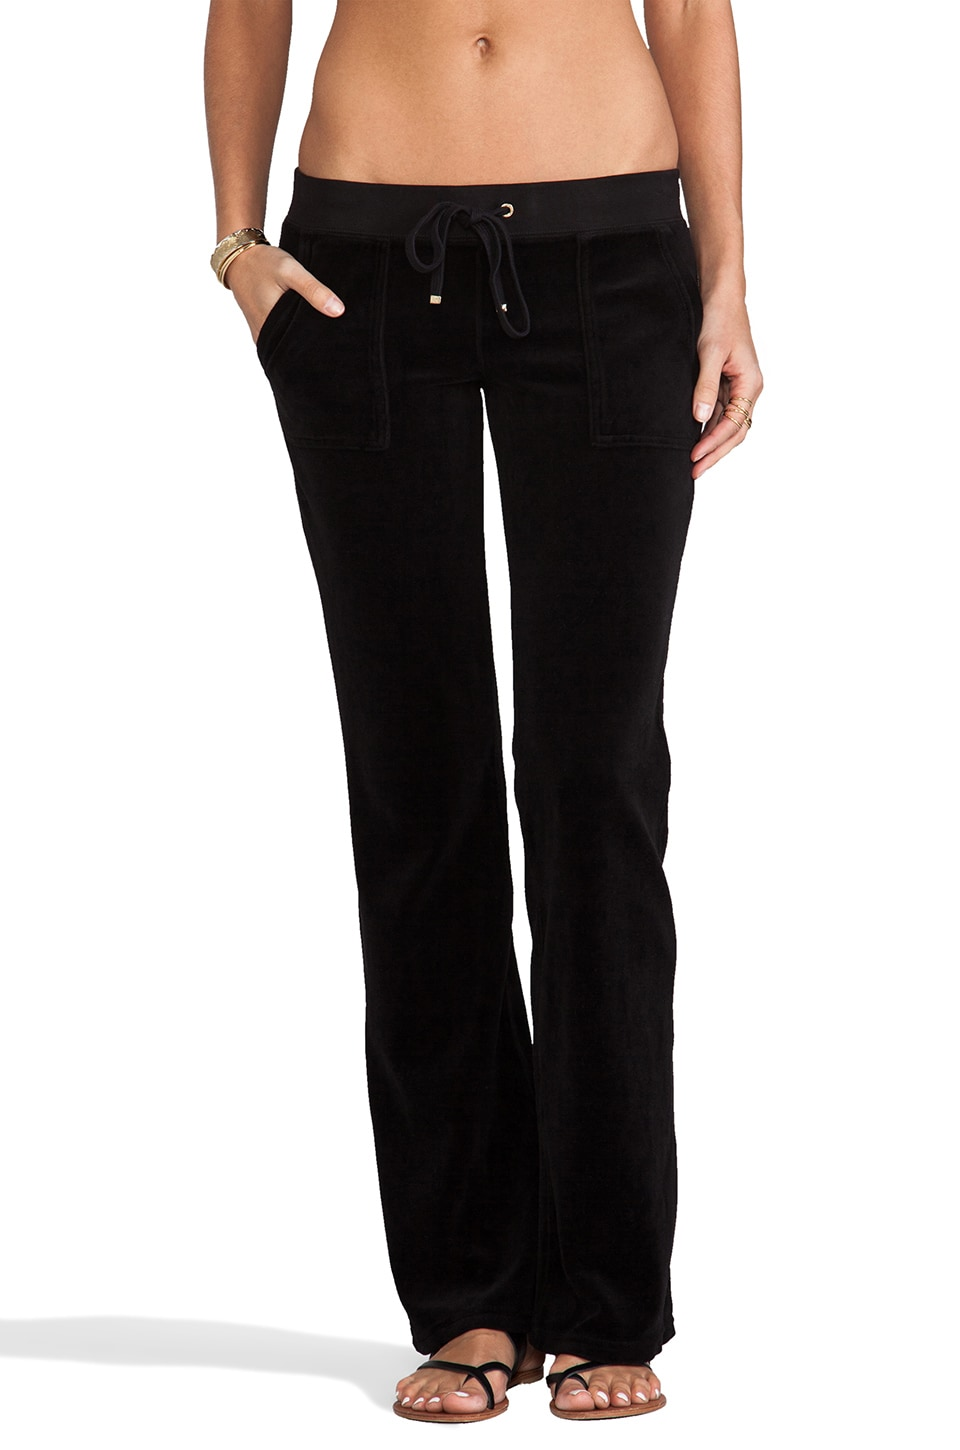 Juicy Couture Velour Bootcut Pant with Snap Pockets in Black